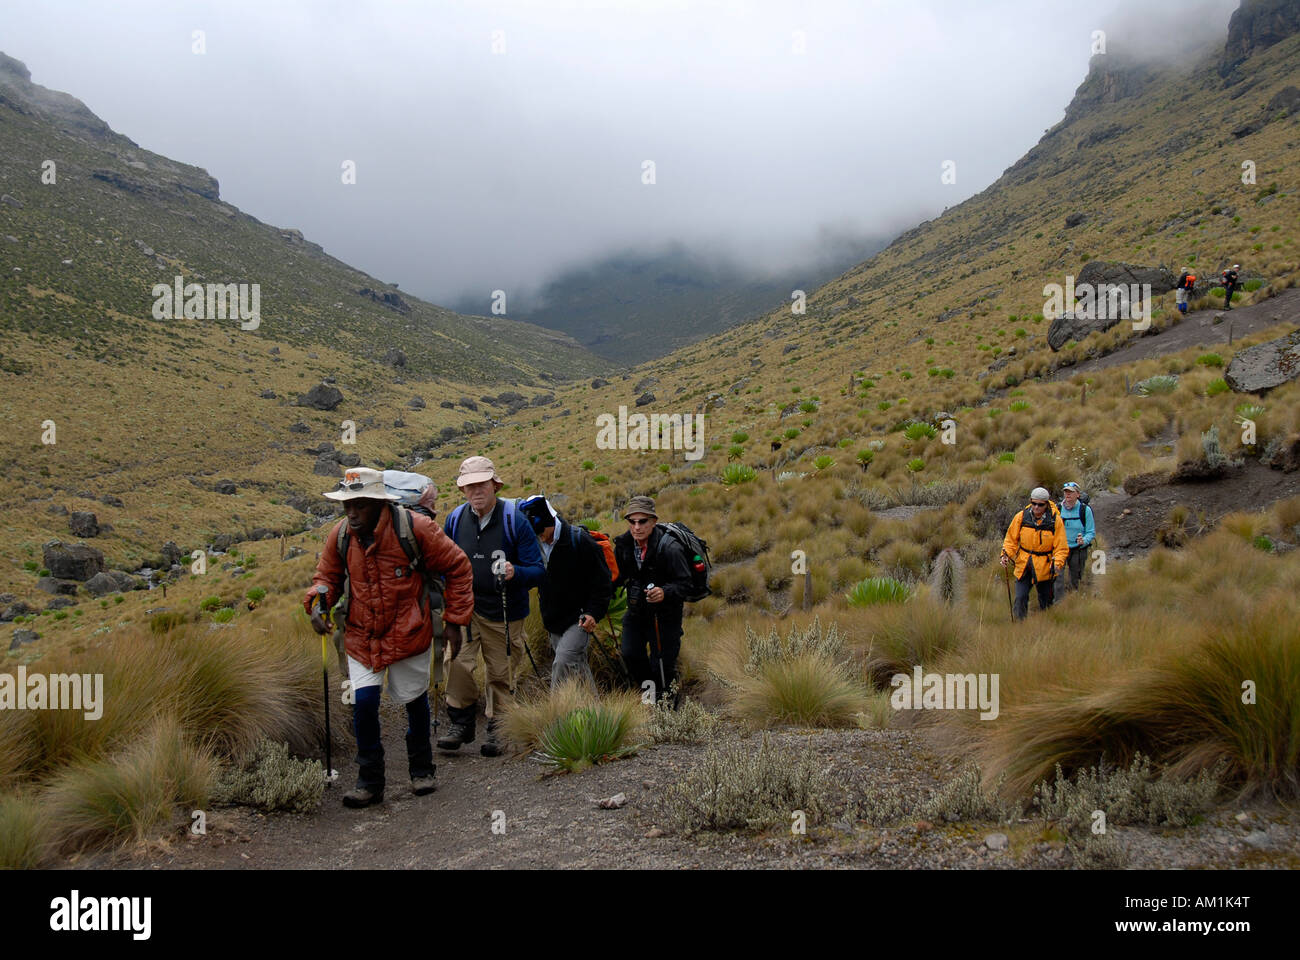 Group of trekkers with local guide on a footpath in fen landscape Mount Kenya National Park Kenya Stock Photo